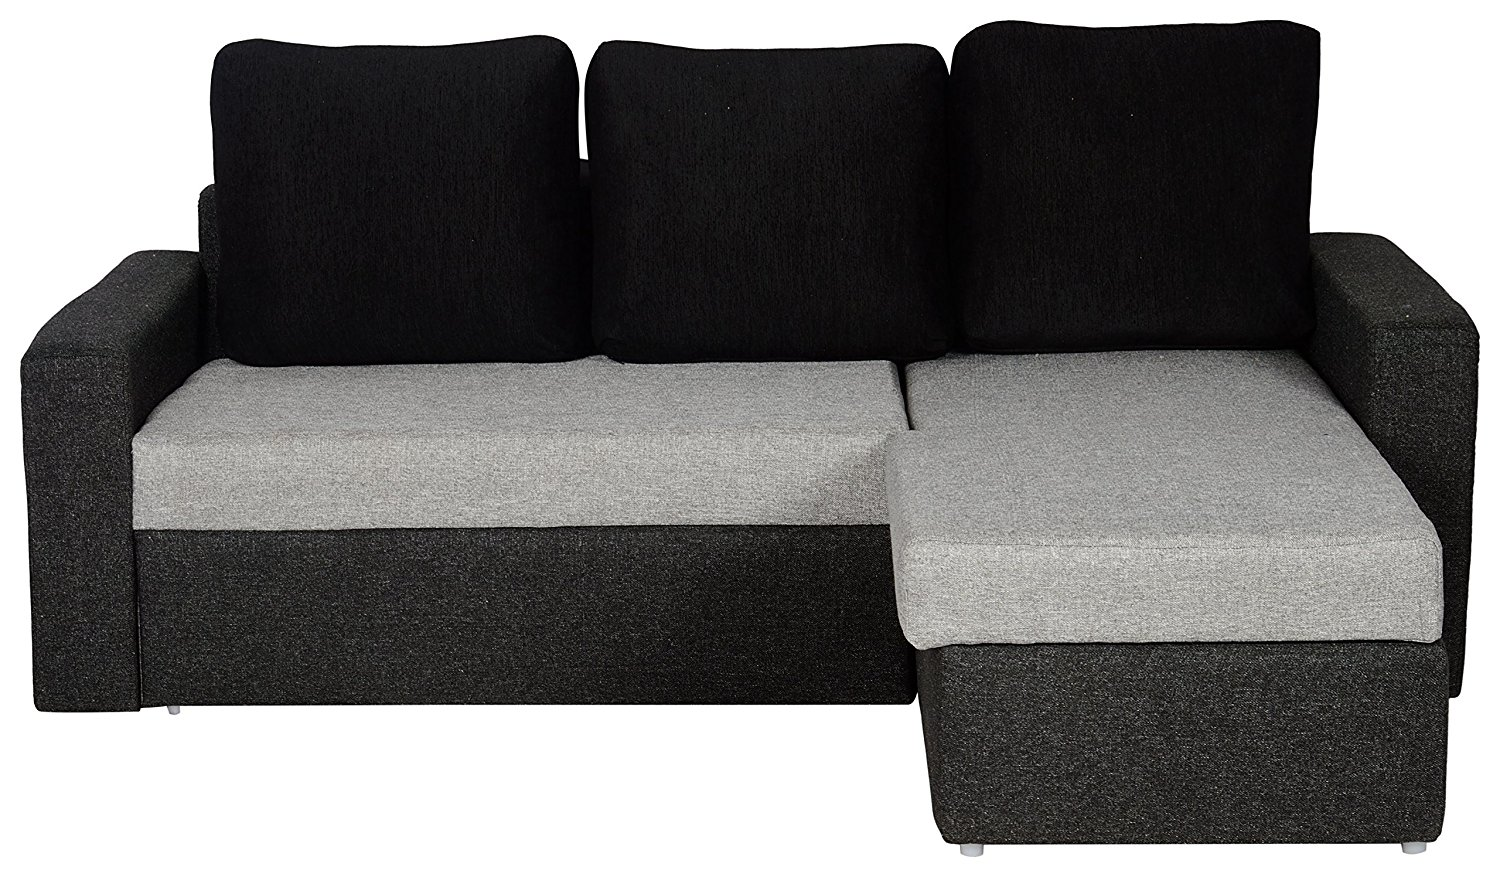 L Shaped Sofa Bed With Storage Grey And Black Pharneechar Online Furniture Delhi Ncr